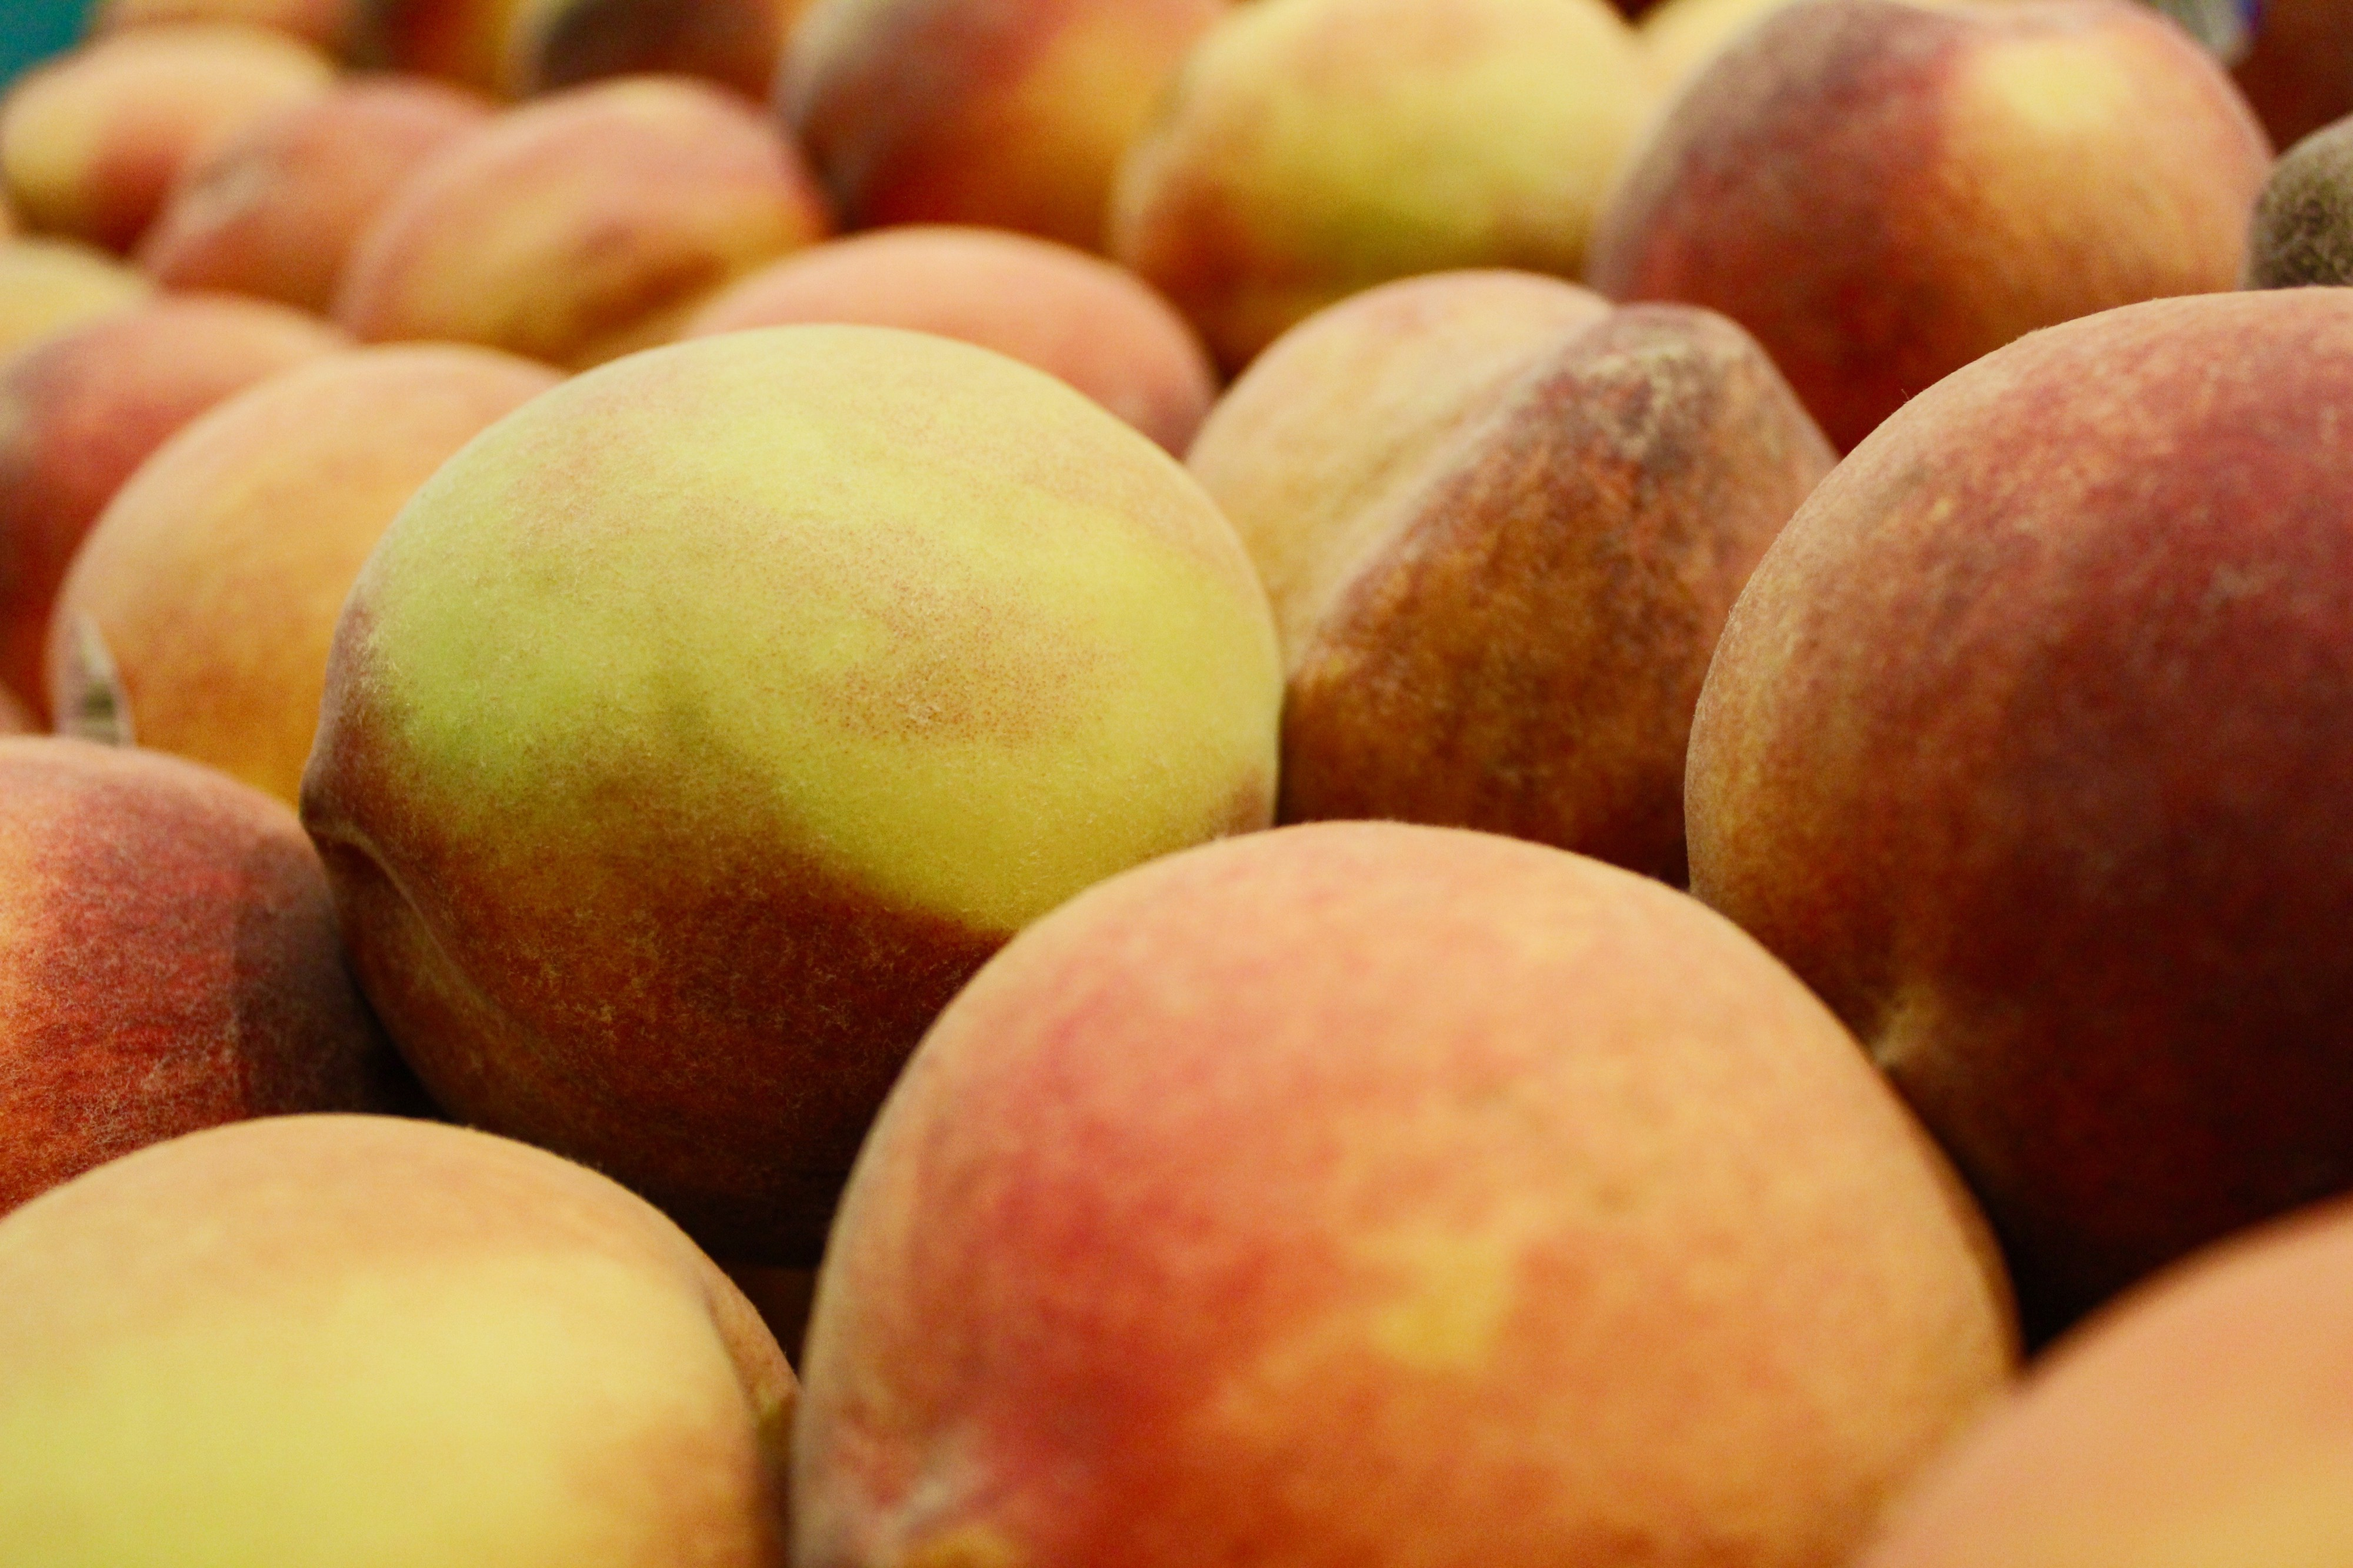 Before we get to skittles, try the peaches and cream scent